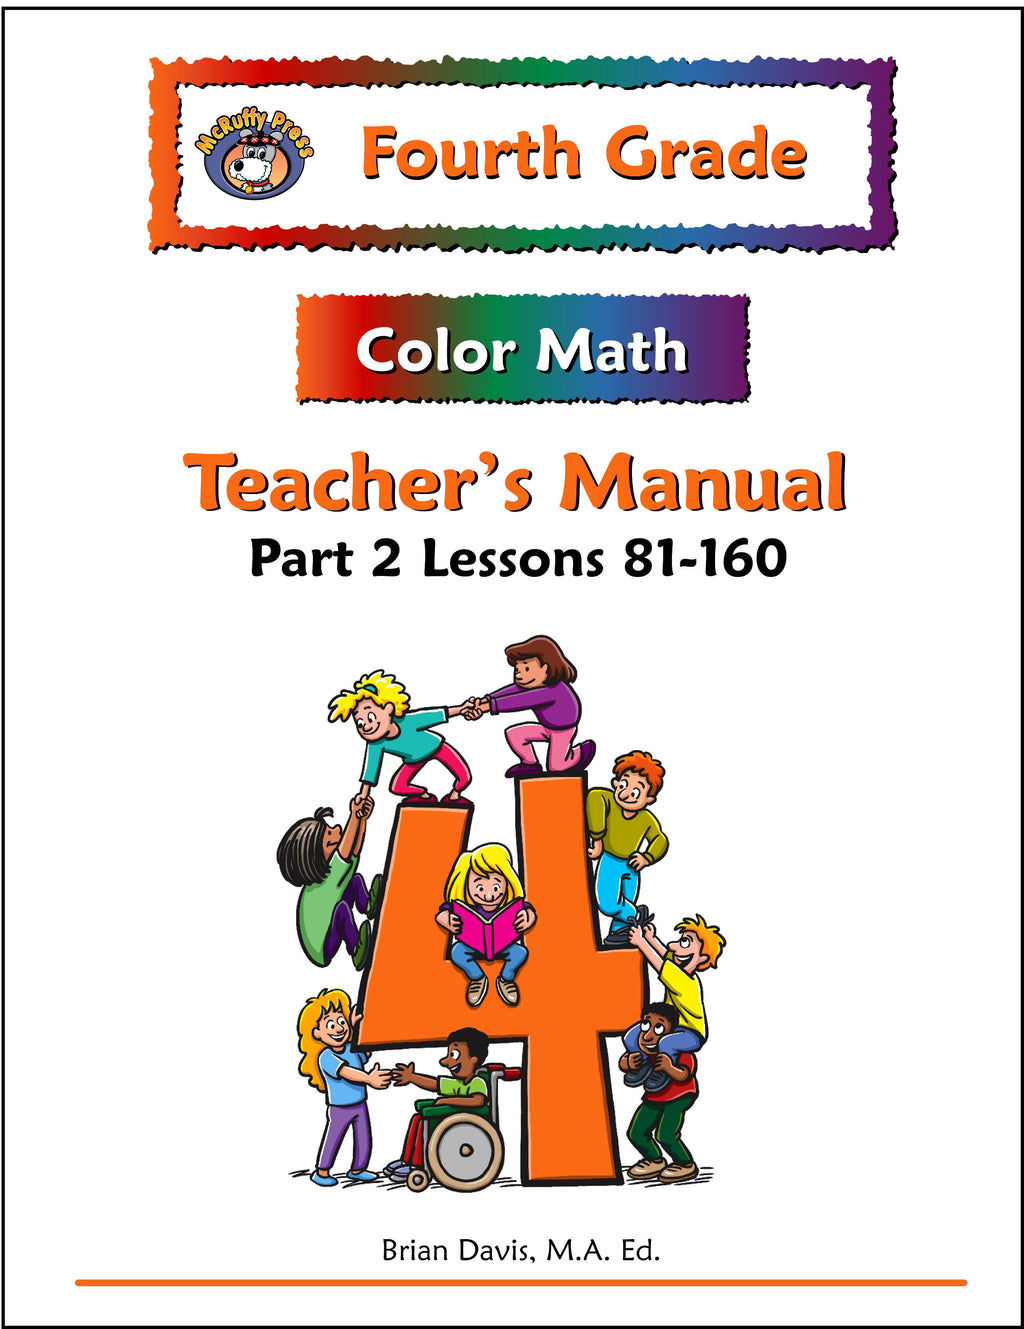 Fourth Grade Color Math Teacher's Manual Part 2 - McRuffy Press